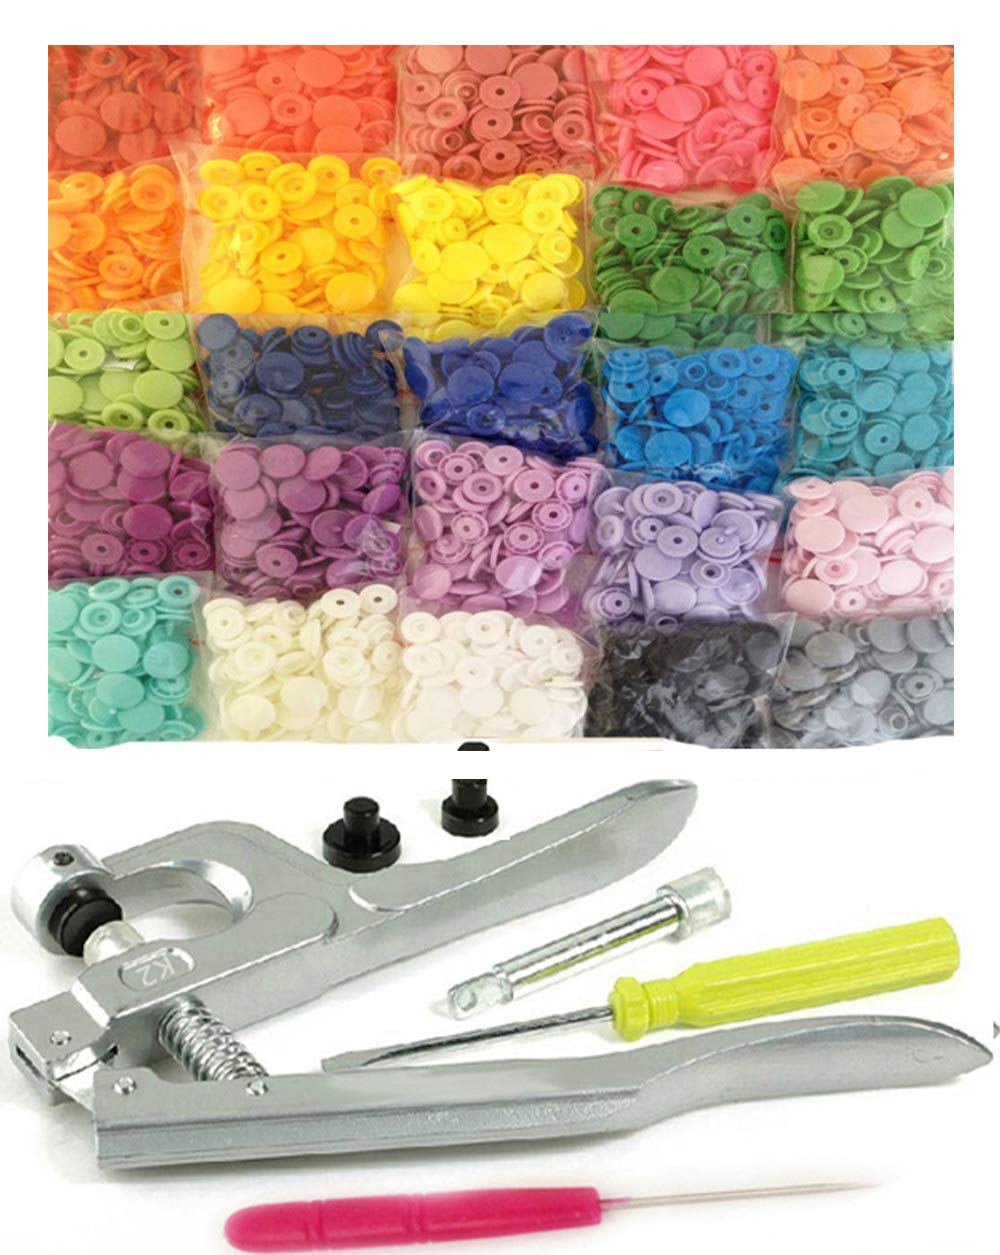 500 Sets 25-Color Original KAMsnaps KAM Snap Press Pliers Plastic Snaps Starter Pack No-Sew Button Fastener Setter Hand Tool for Cloth Diapers Bibs by KAMsnaps